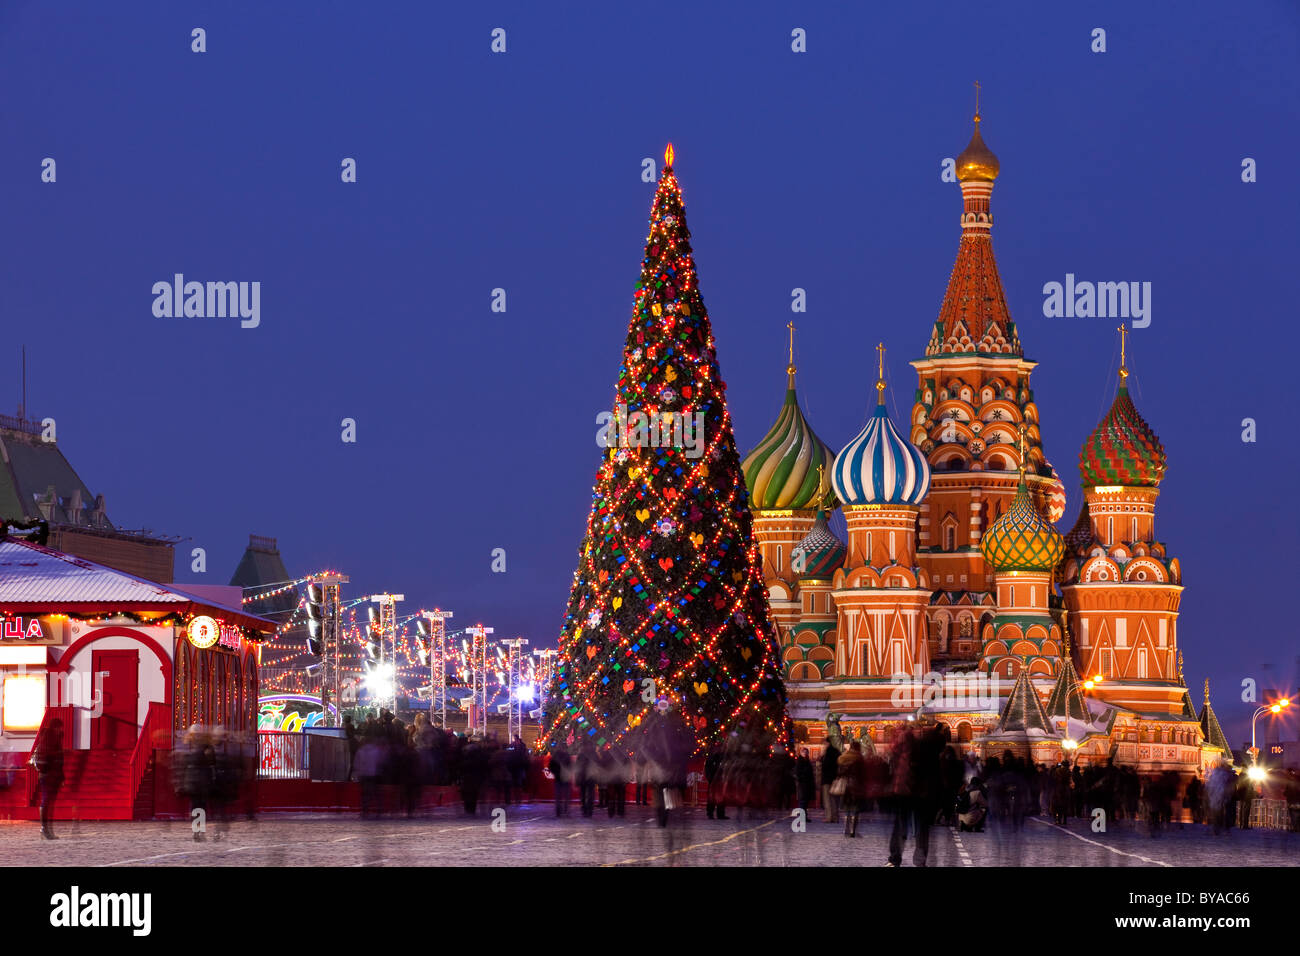 Red Square, Saint Basil's Cathedral at Moscow during Christmas - Stock Image